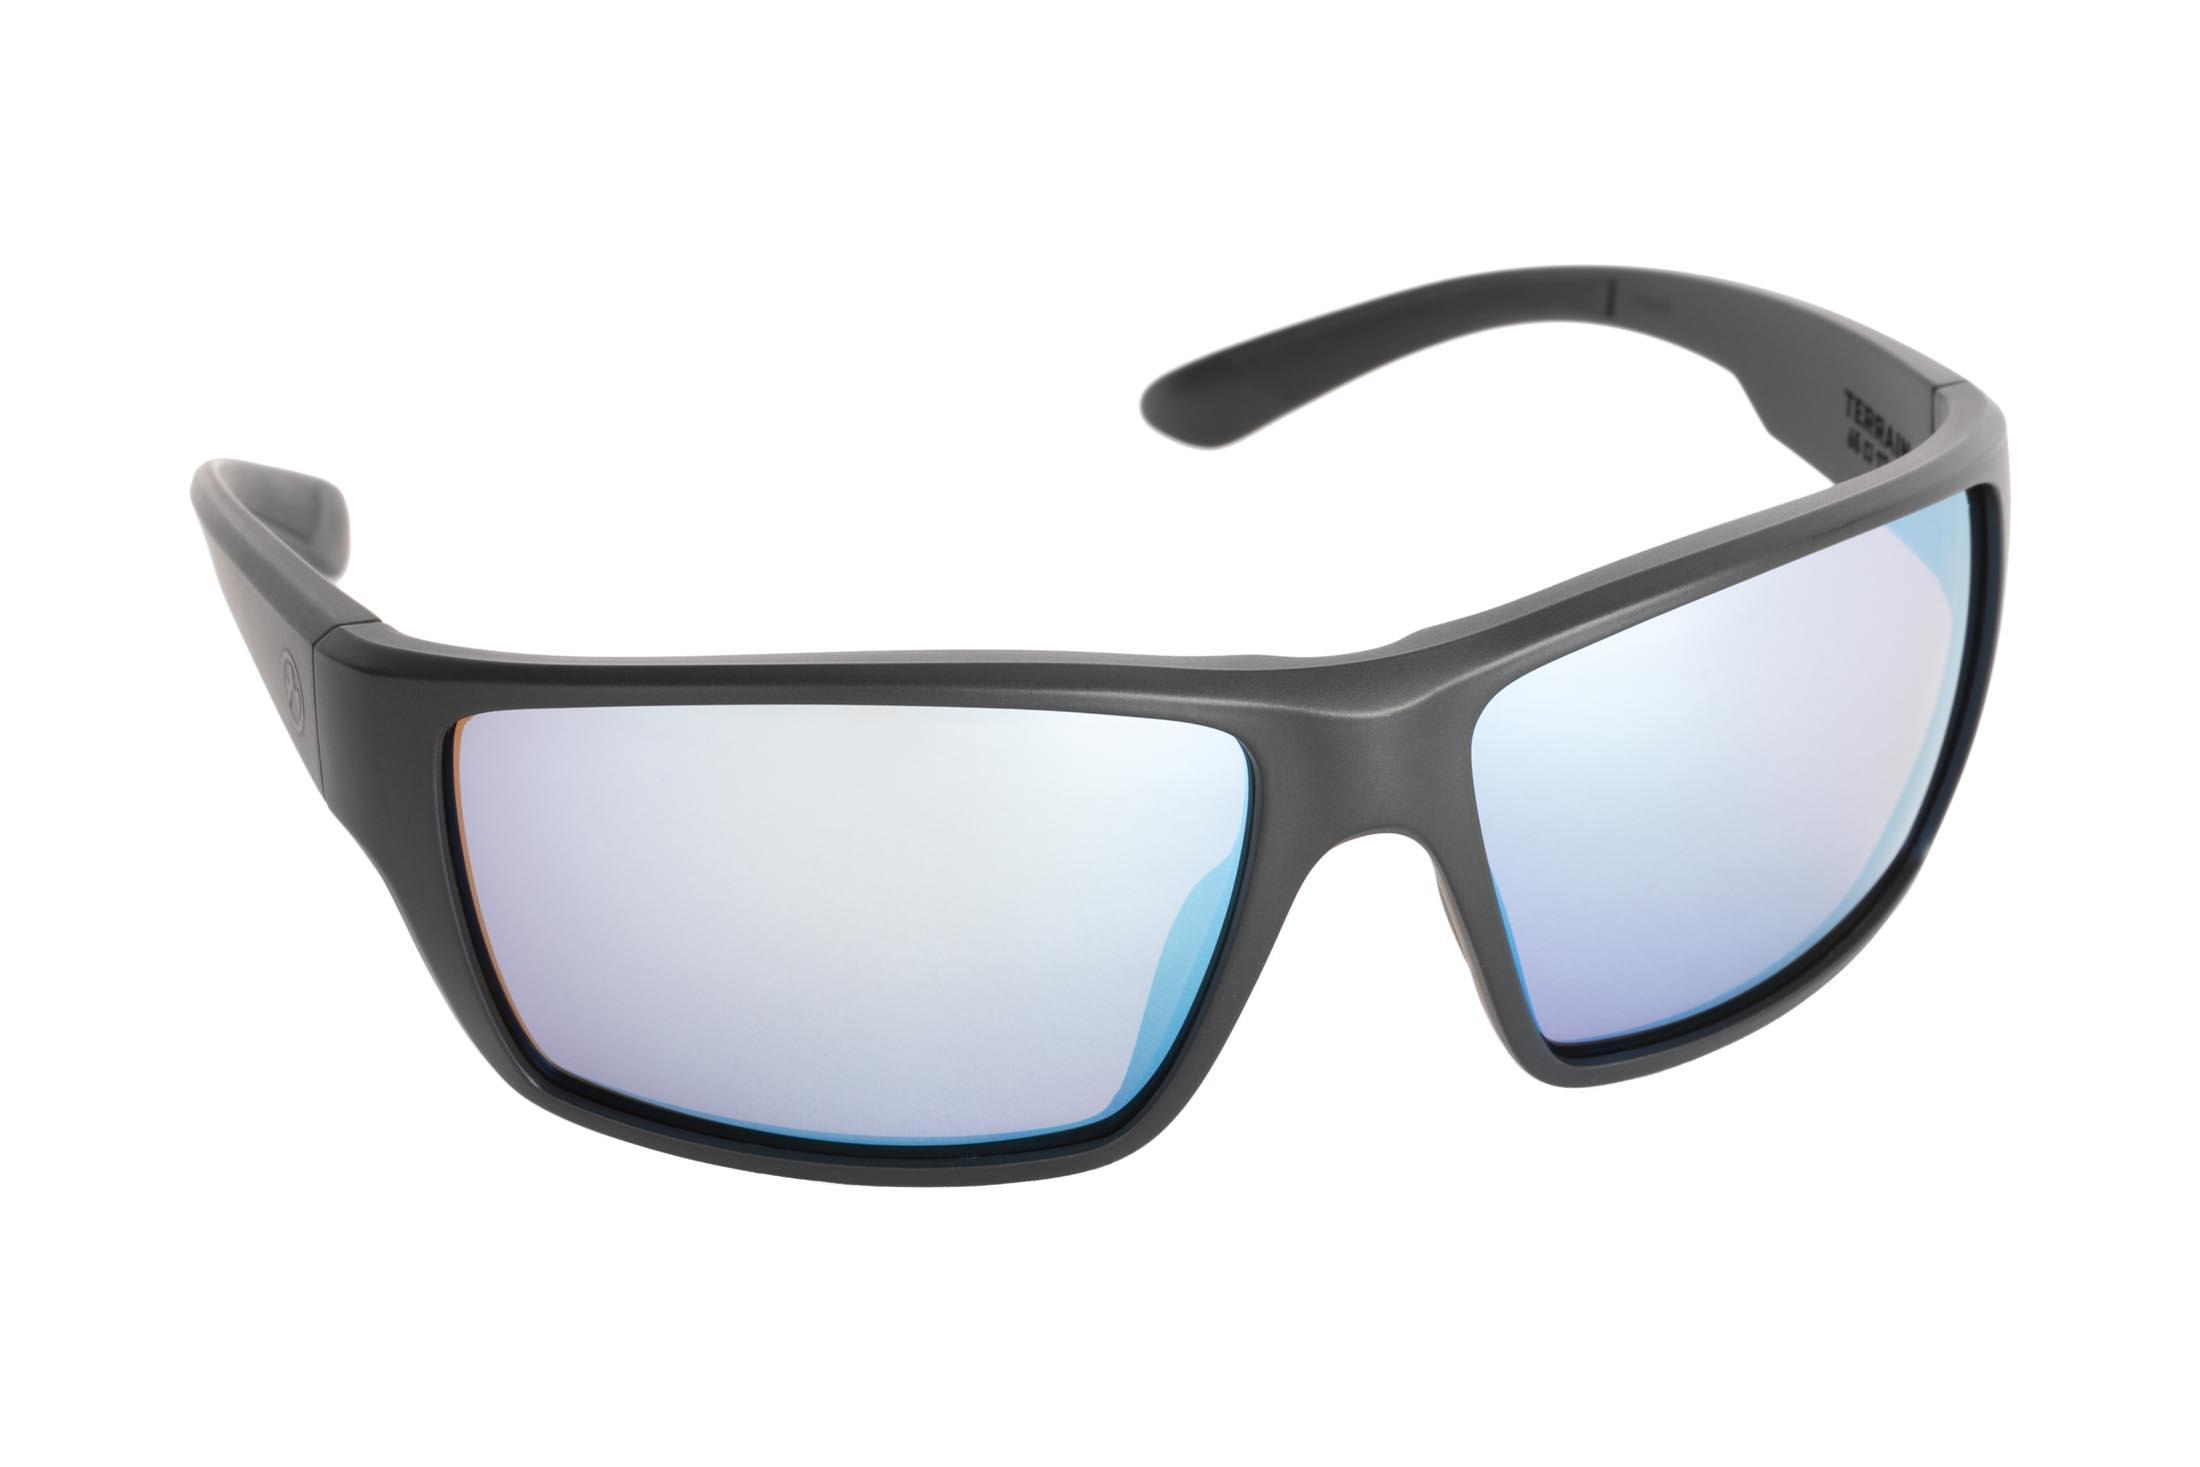 28b3ef092f ... Magpul Terrain ballistic sunglasses with black frame and polarized rose blue  lenses are ideal for ...